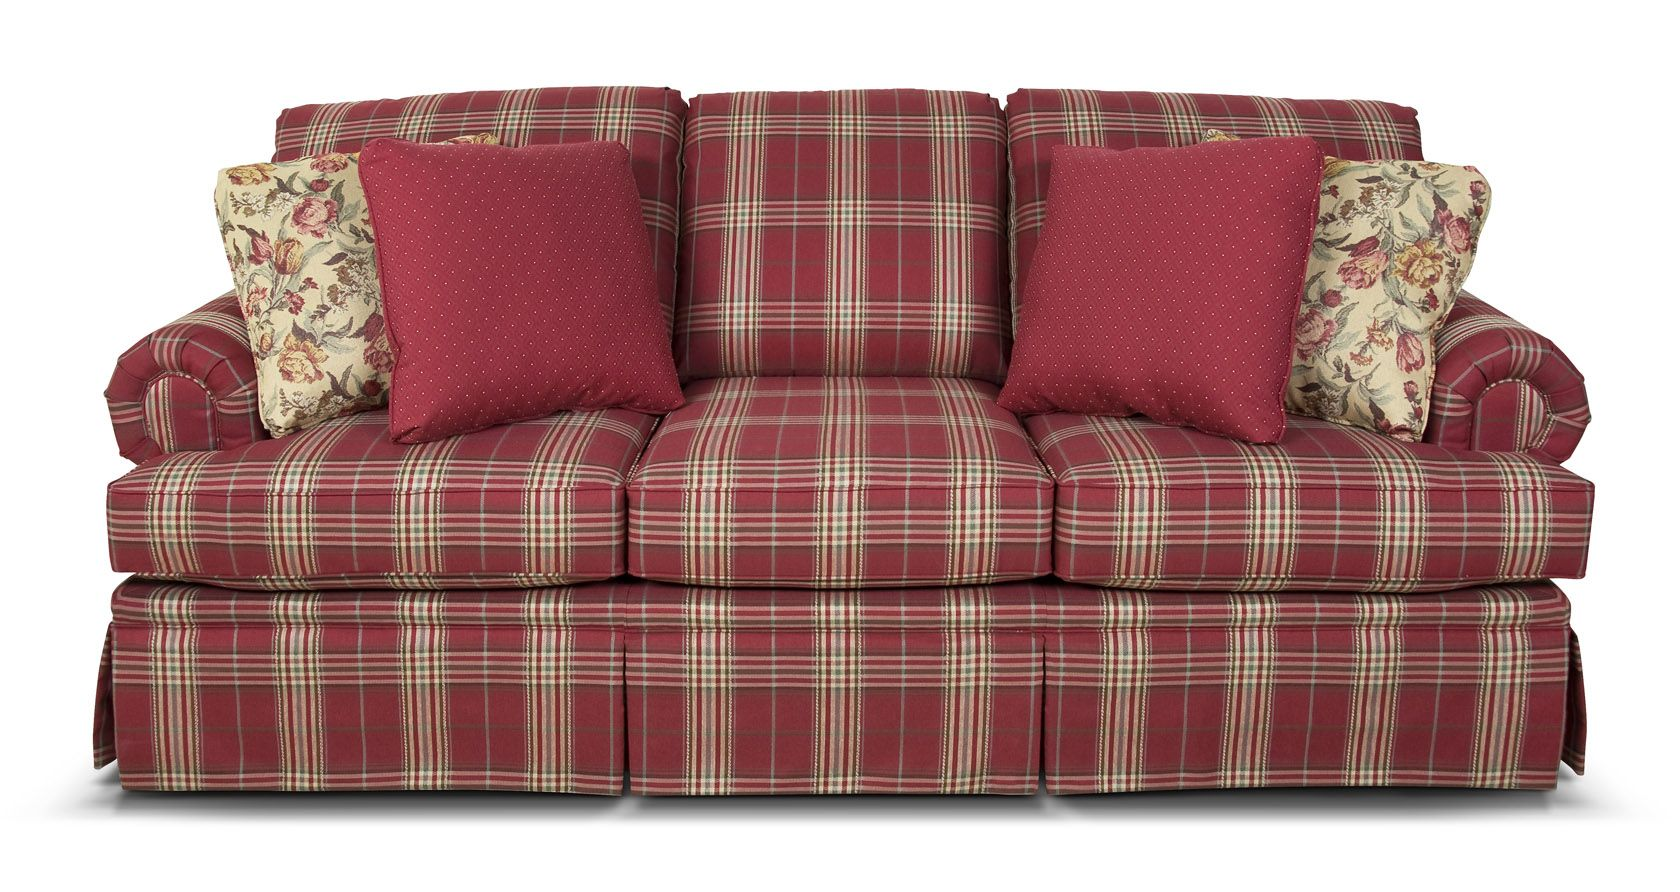 5375 England Clare Clare Plaid Living Room Plaid Sofa Farmhouse Living Room Furniture #plaid #living #room #furniture